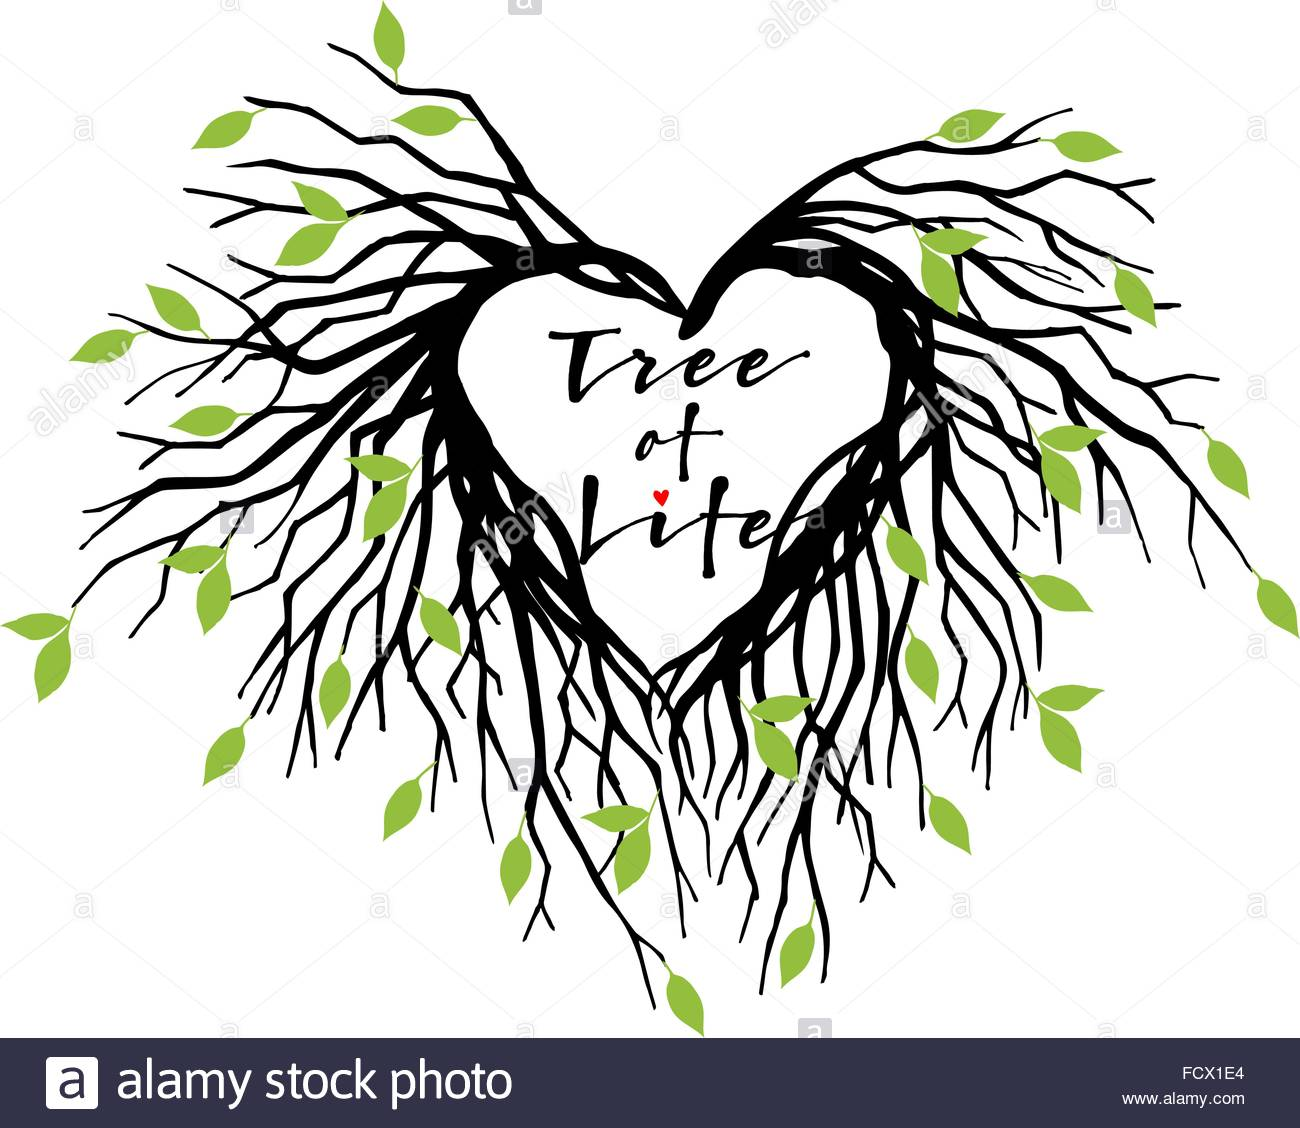 1300x1128 tree of life, heart shaped tree branches with green leaves, vector